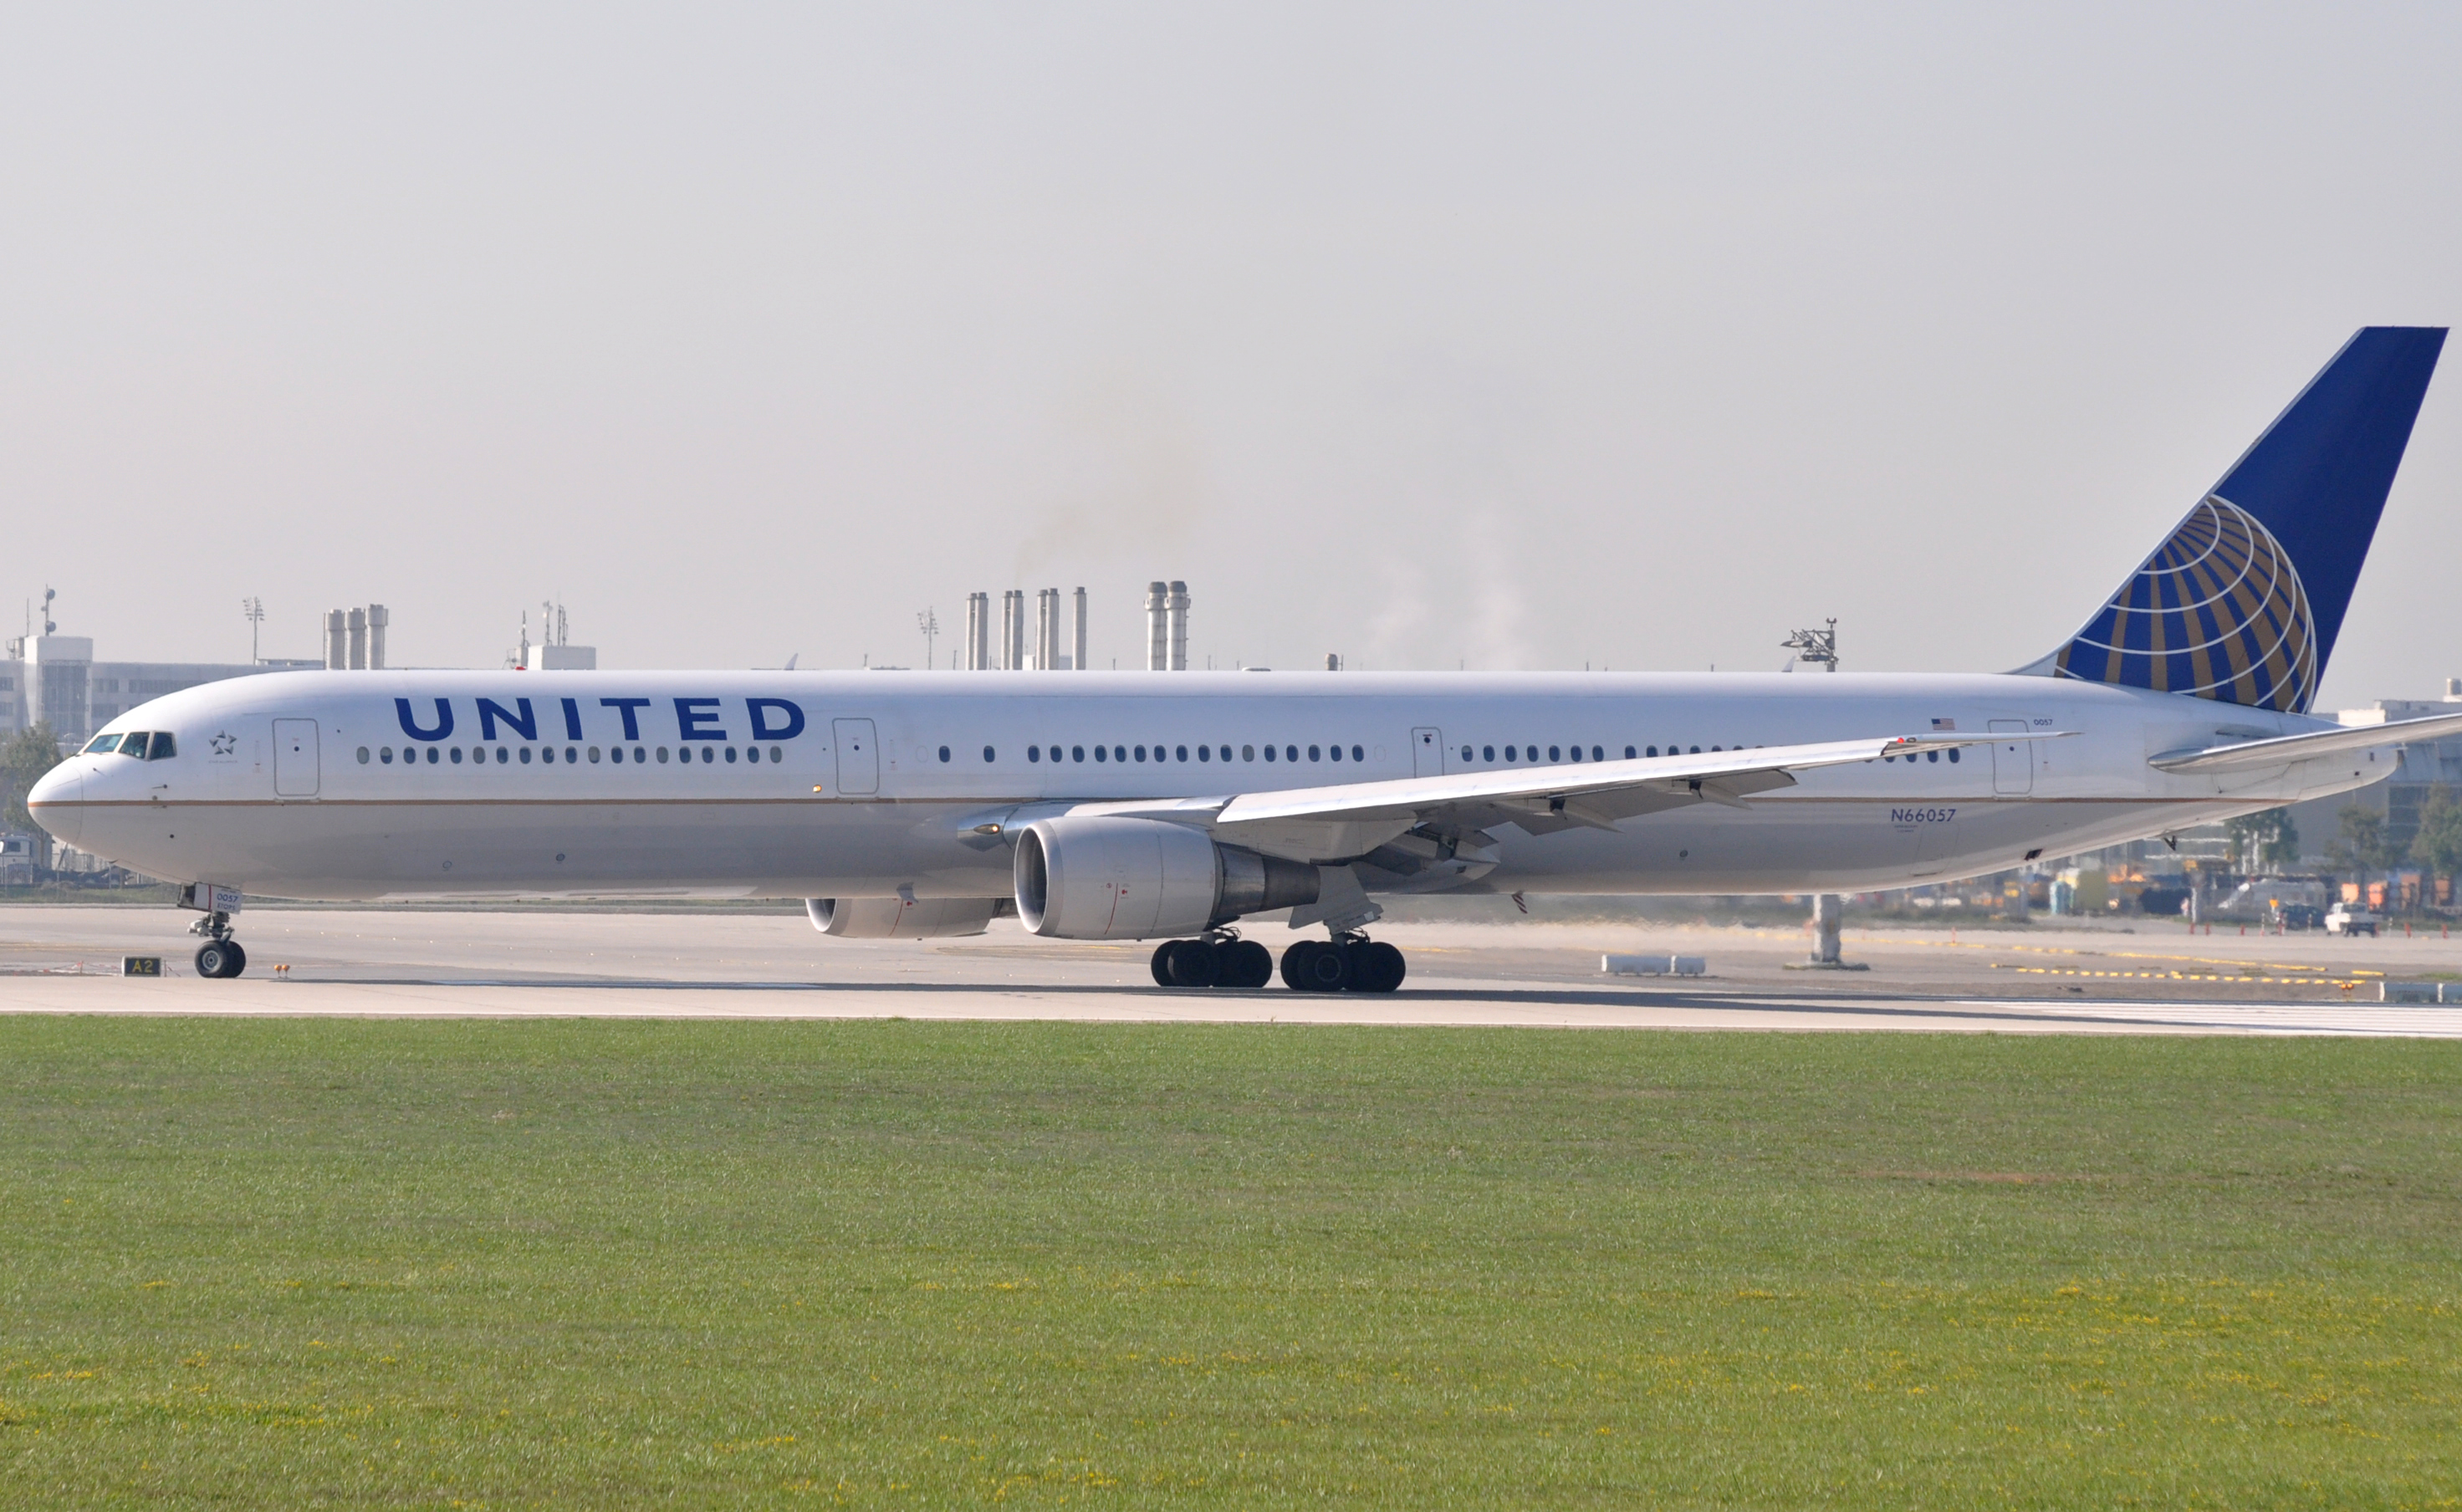 File:United Airlines Boeing 767-400.jpg - Wikimedia Commons